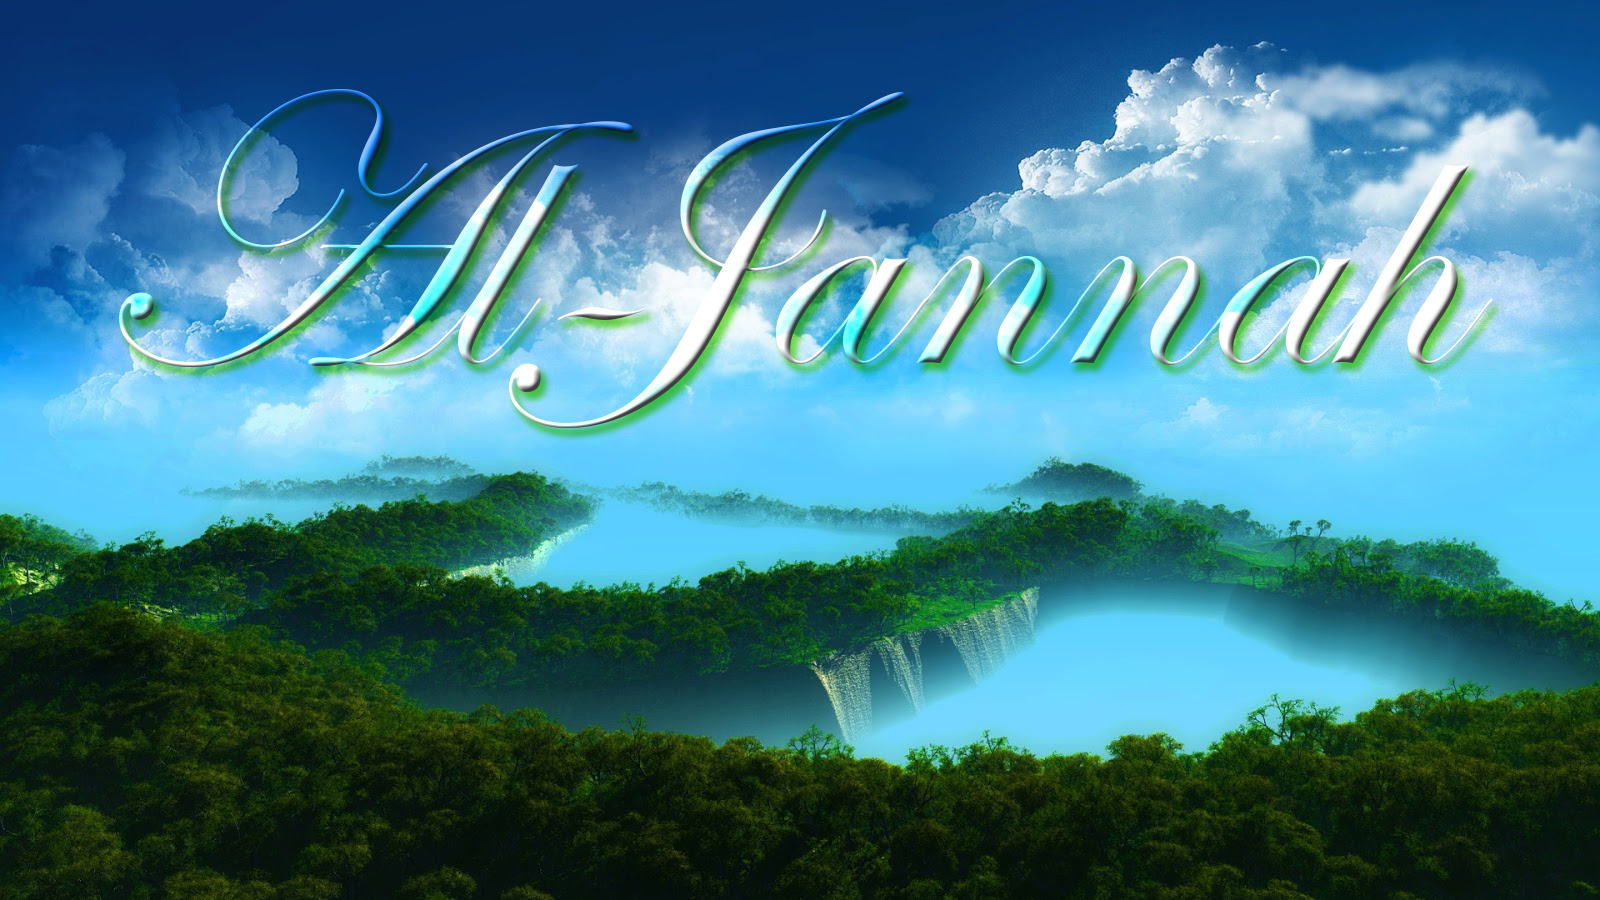 paradise islamic wallpapers - photo #1